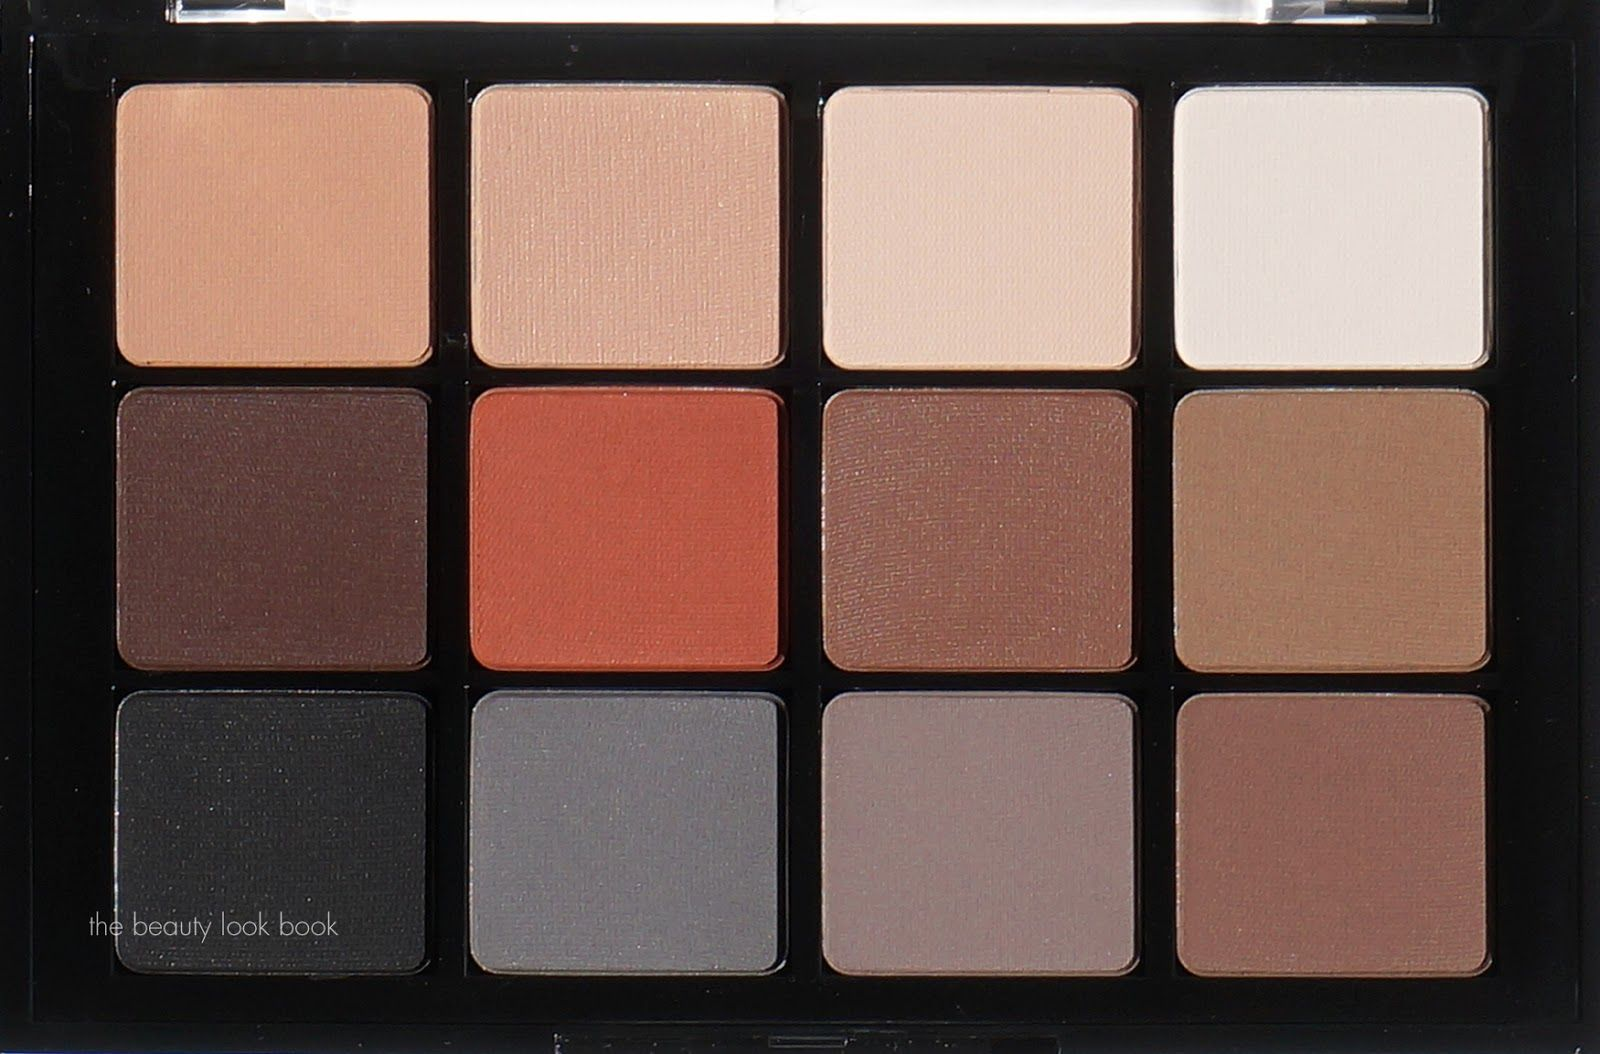 Viseart Eyeshadow Palettes in Neutral Matte and Sultry